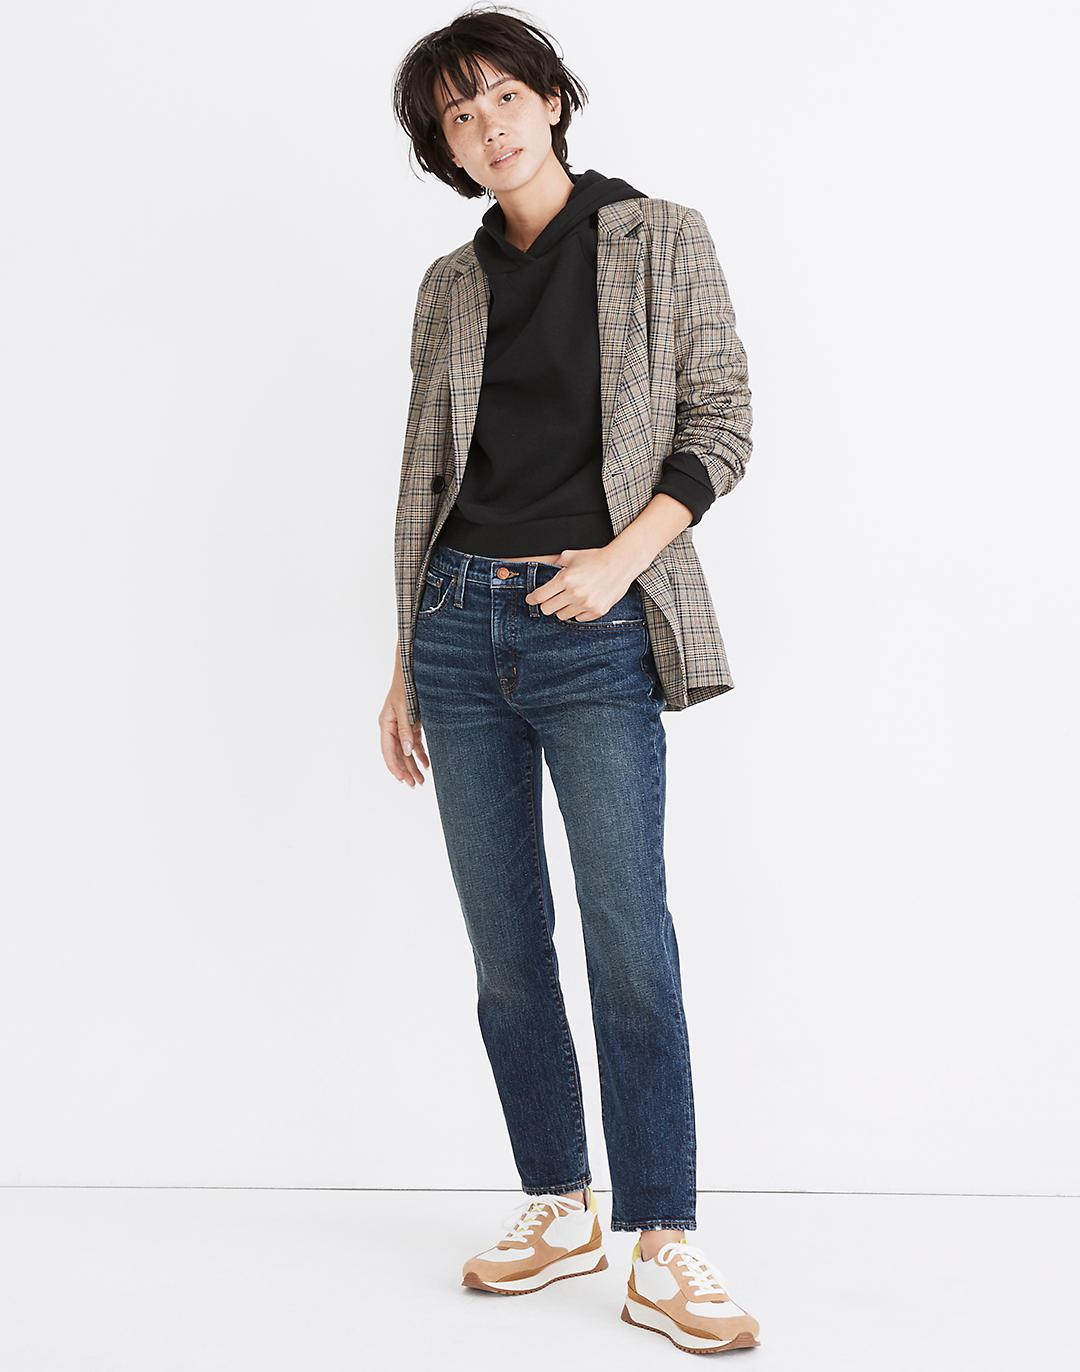 Tomboy Straight Jeans in Chaseley Wash